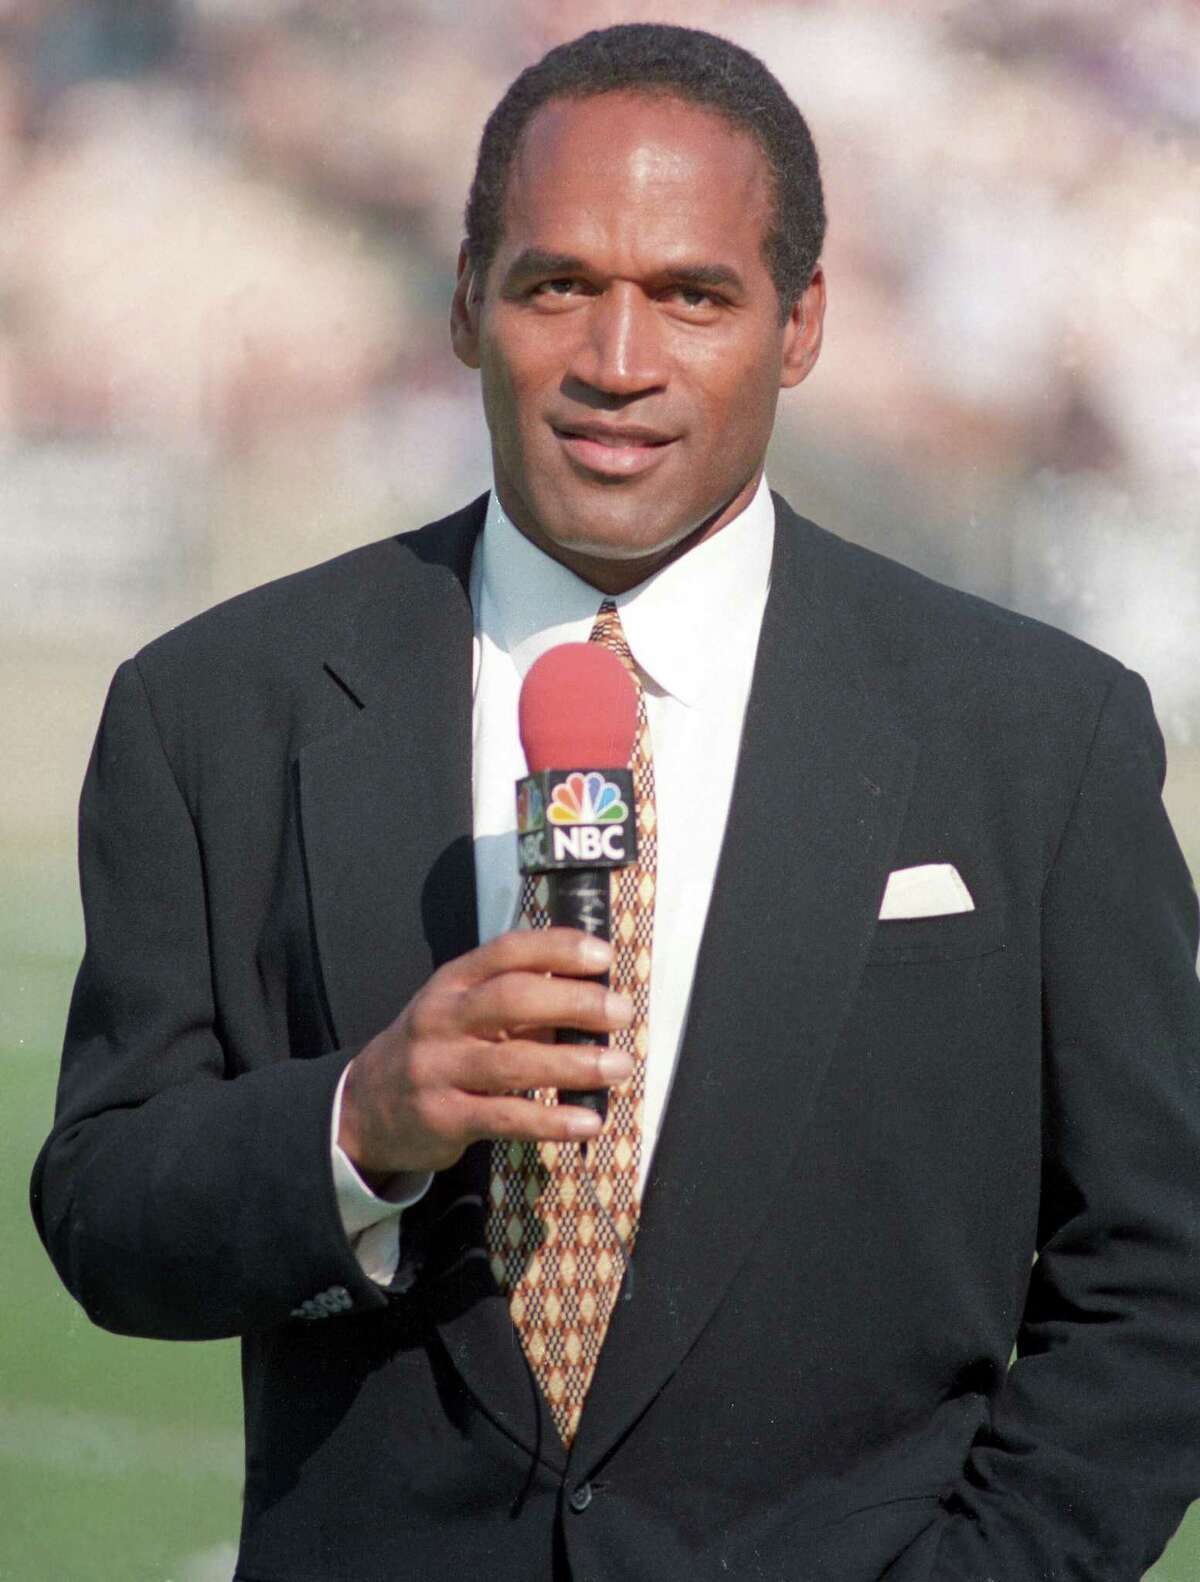 Before his 1995 criminal trial, O.J. Simpson, aka Orenthal James Simpson, was a football hero, a 1968 Heisman Trophy winner, a television pitchman, a Hollywood actor and celebrity, as well as a NBC Sports sideline reporter.